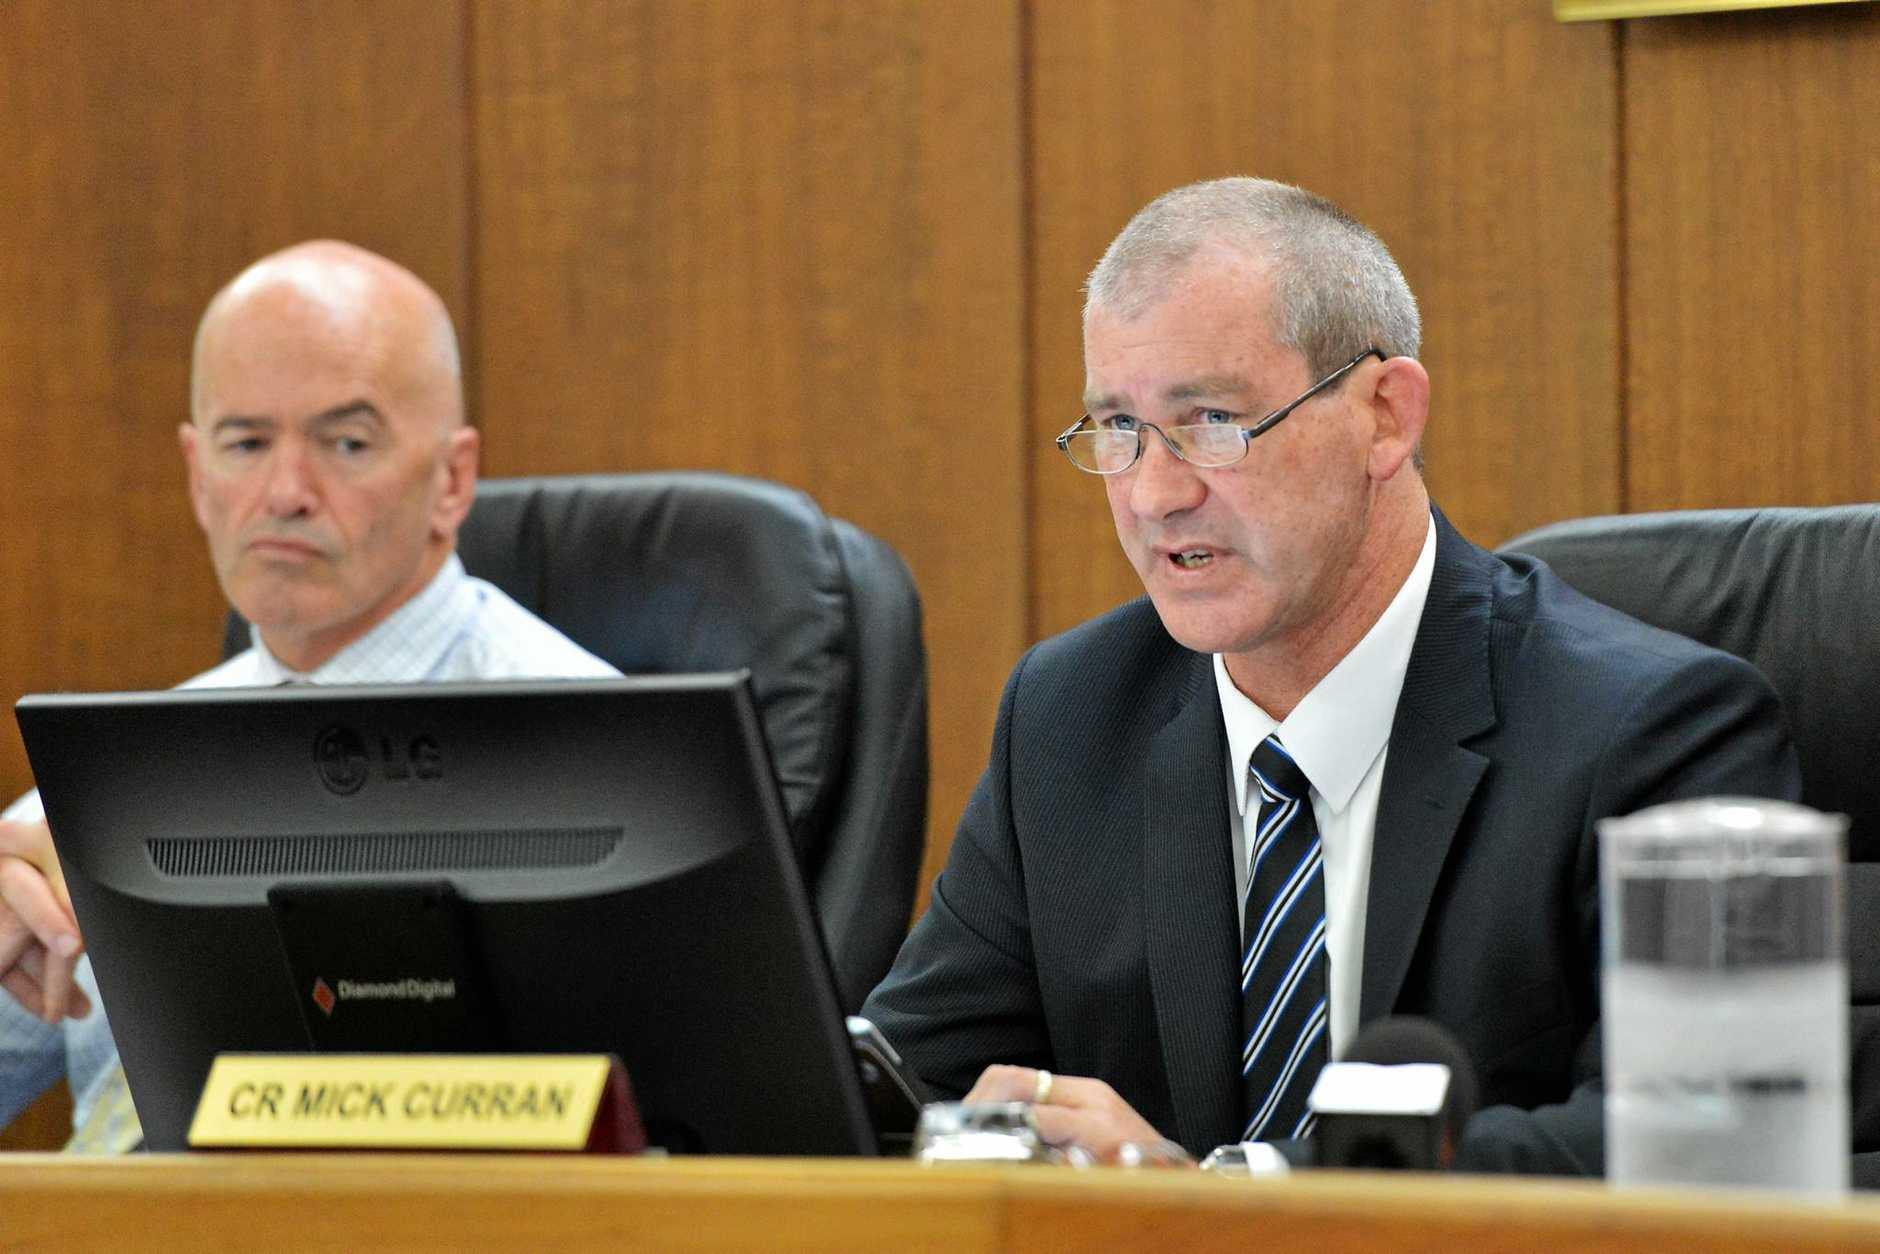 Gympie Regional Council bring down their first budget under Mayor Mick Curran.   Mayor Mick Curran addressing council.    Photo Greg Miller / Gympie Times